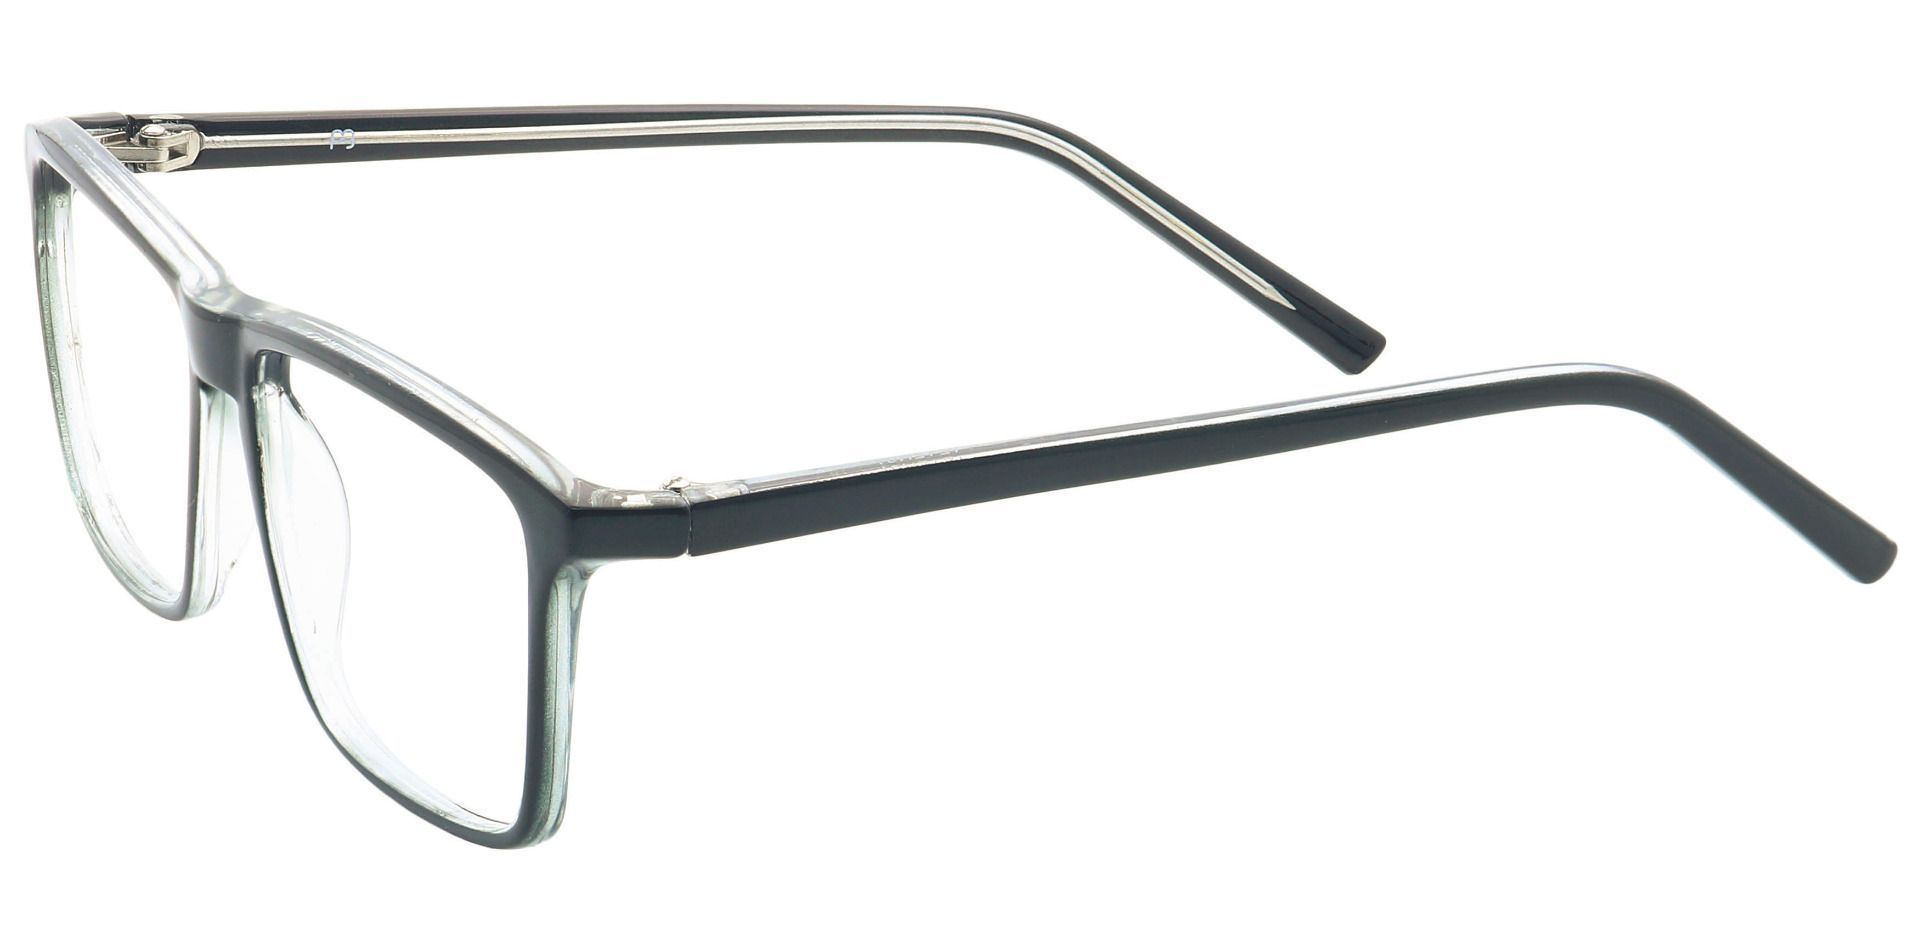 Windsor Rectangle Blue Light Blocking Glasses - Shiny Black/crystal